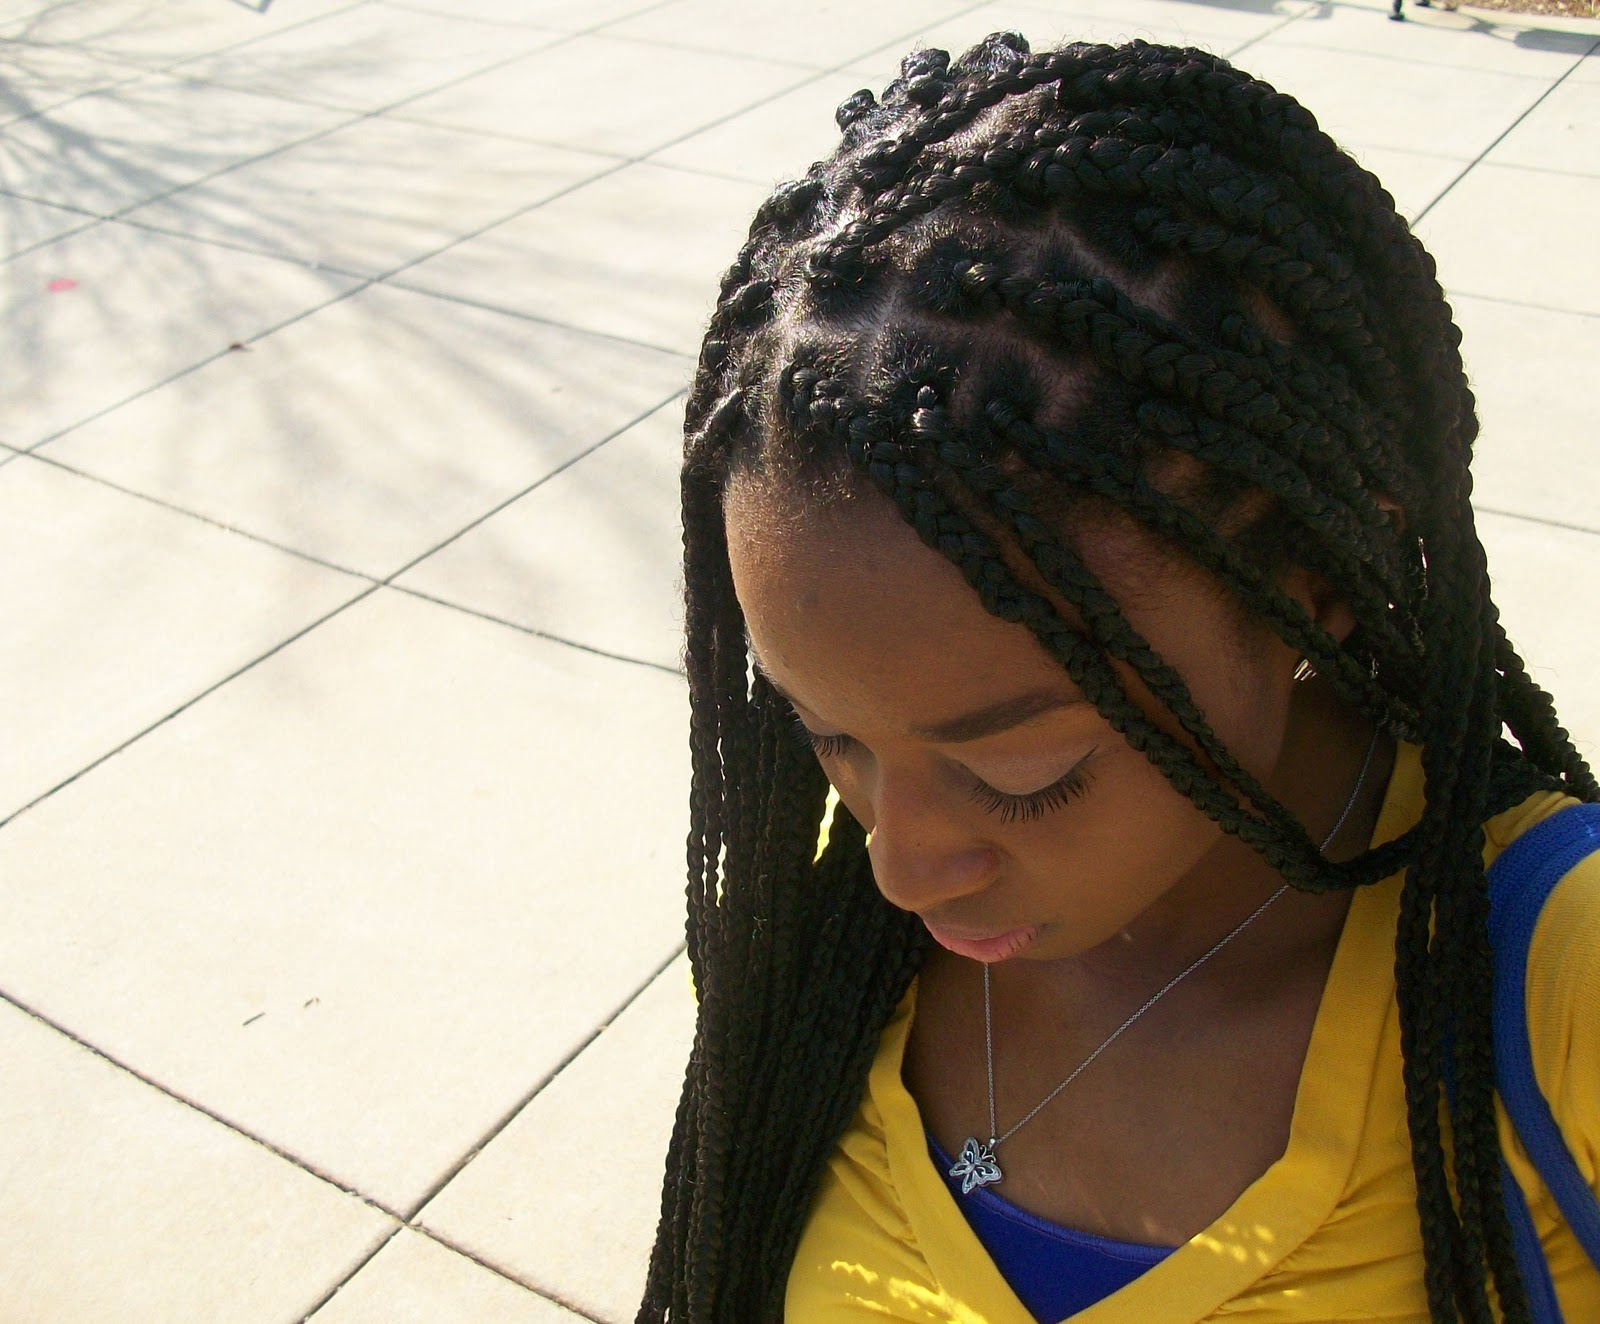 Poetic Justice Box Braids http://birdiztheword.blogspot.com/2011/02/poetic-justice-no-peace-box-braids.html